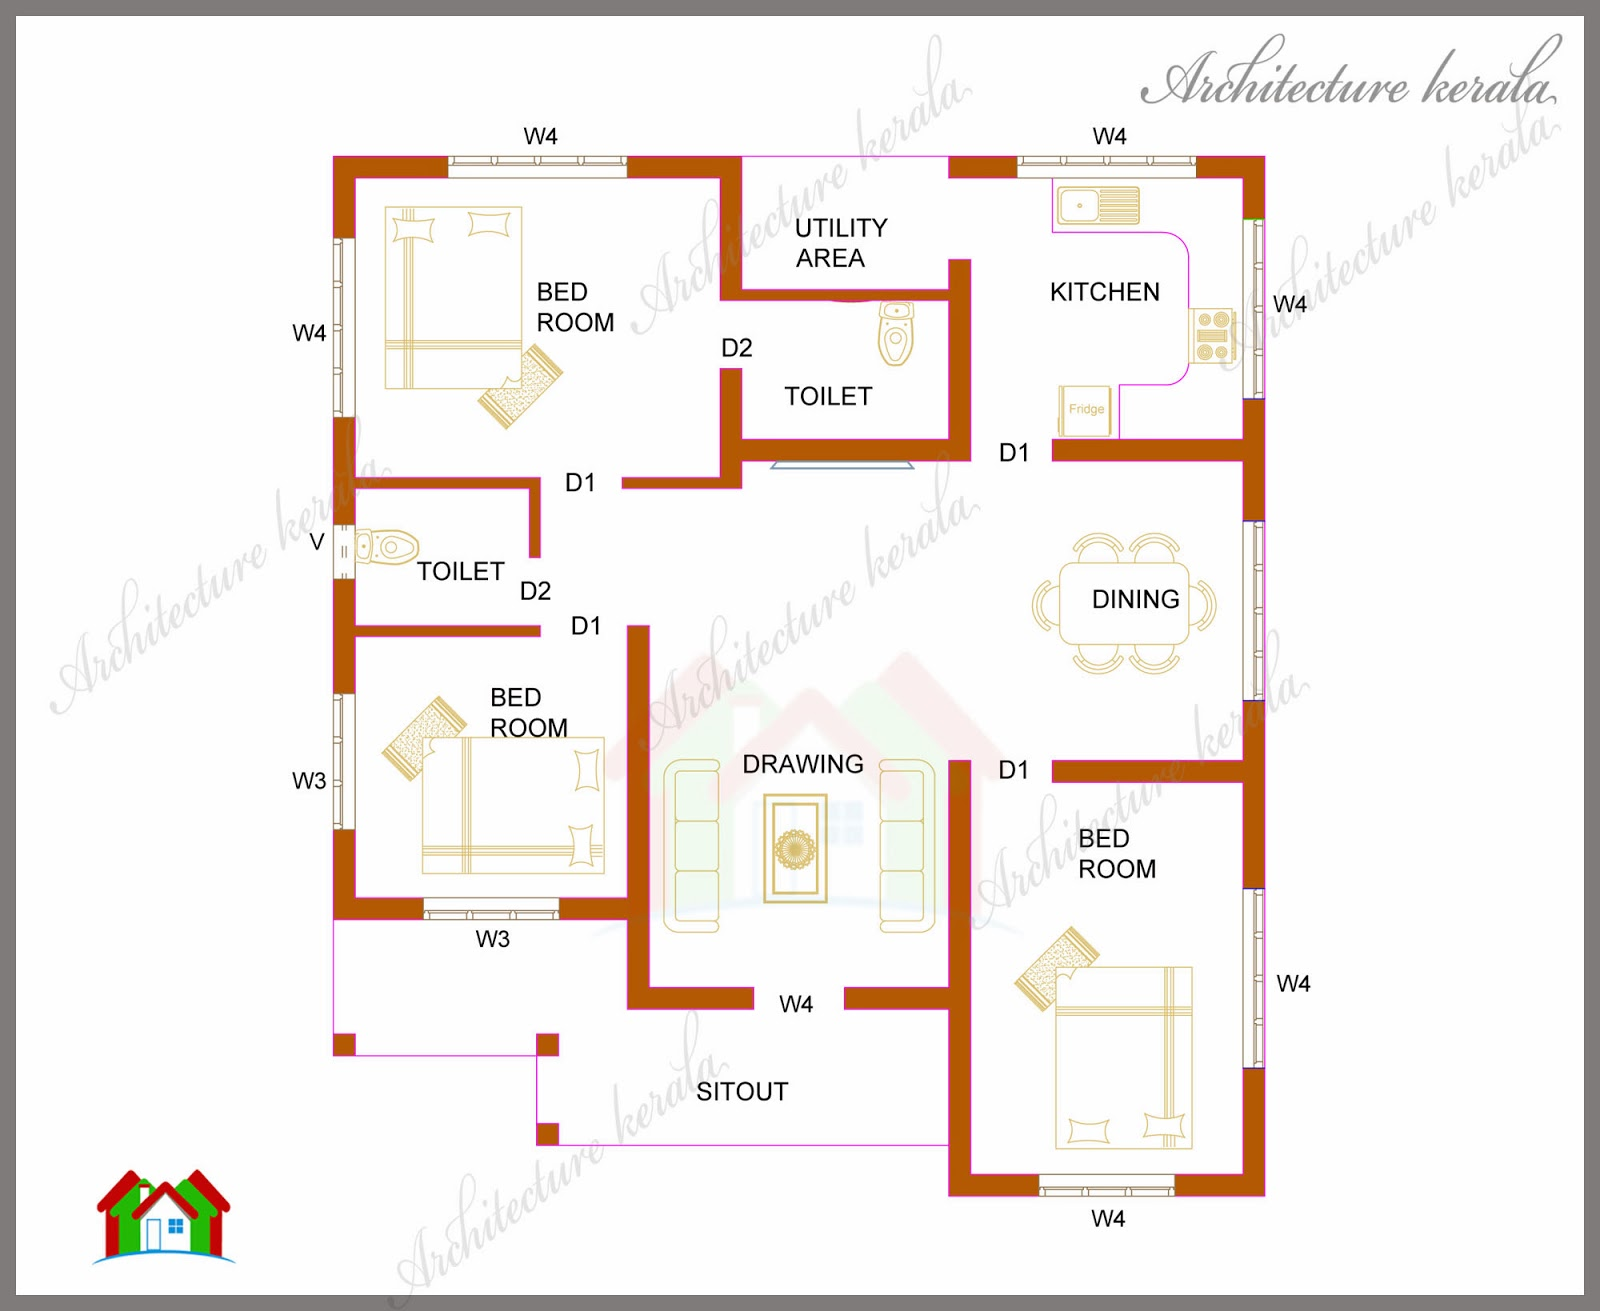 Three bedrooms in 1200 square feet kerala house plan for 3 bedroom house floor plans with models pdf